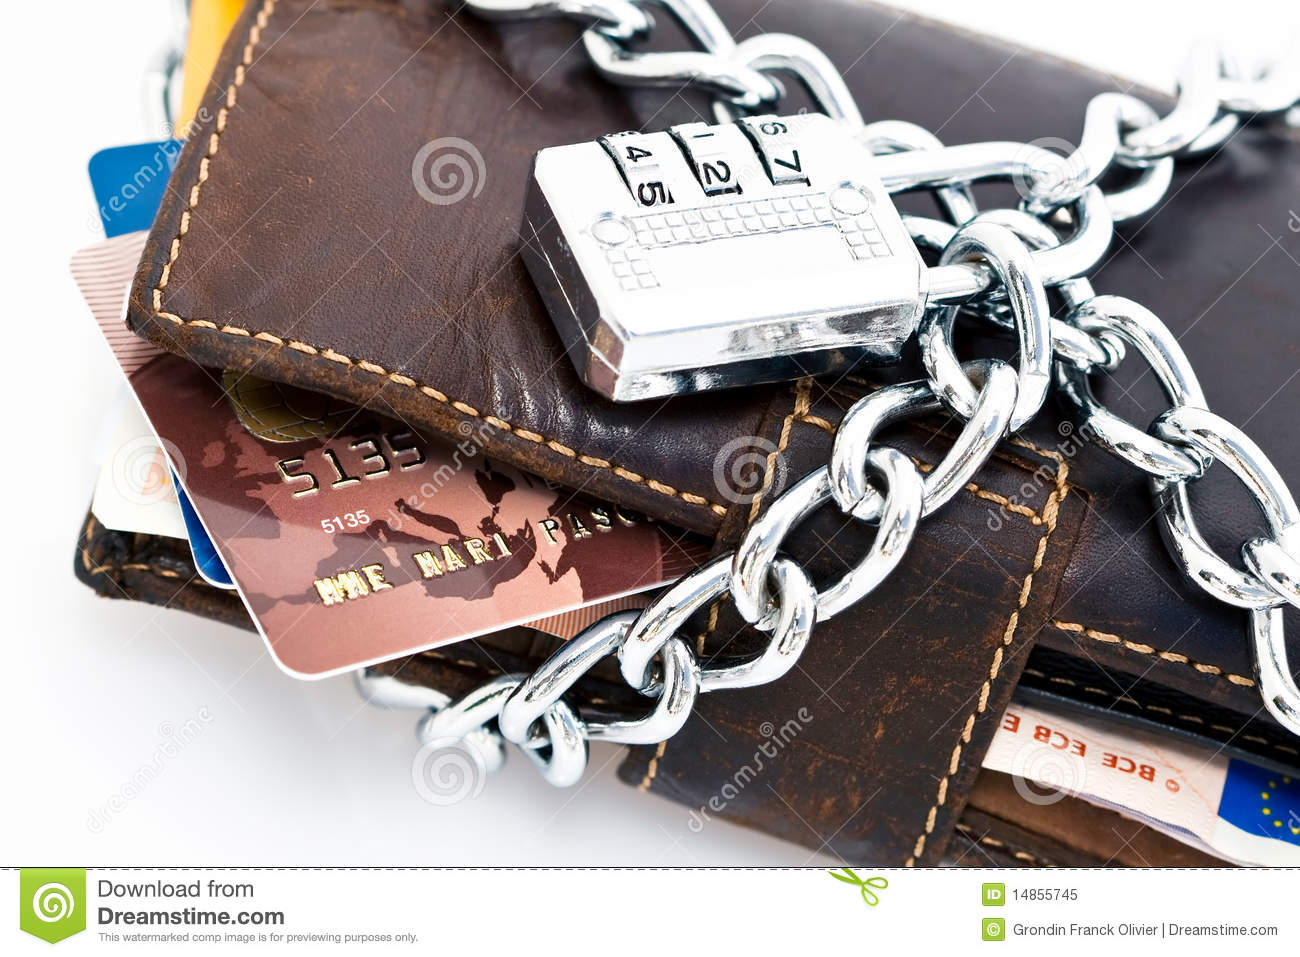 Locked wallet and credit cards